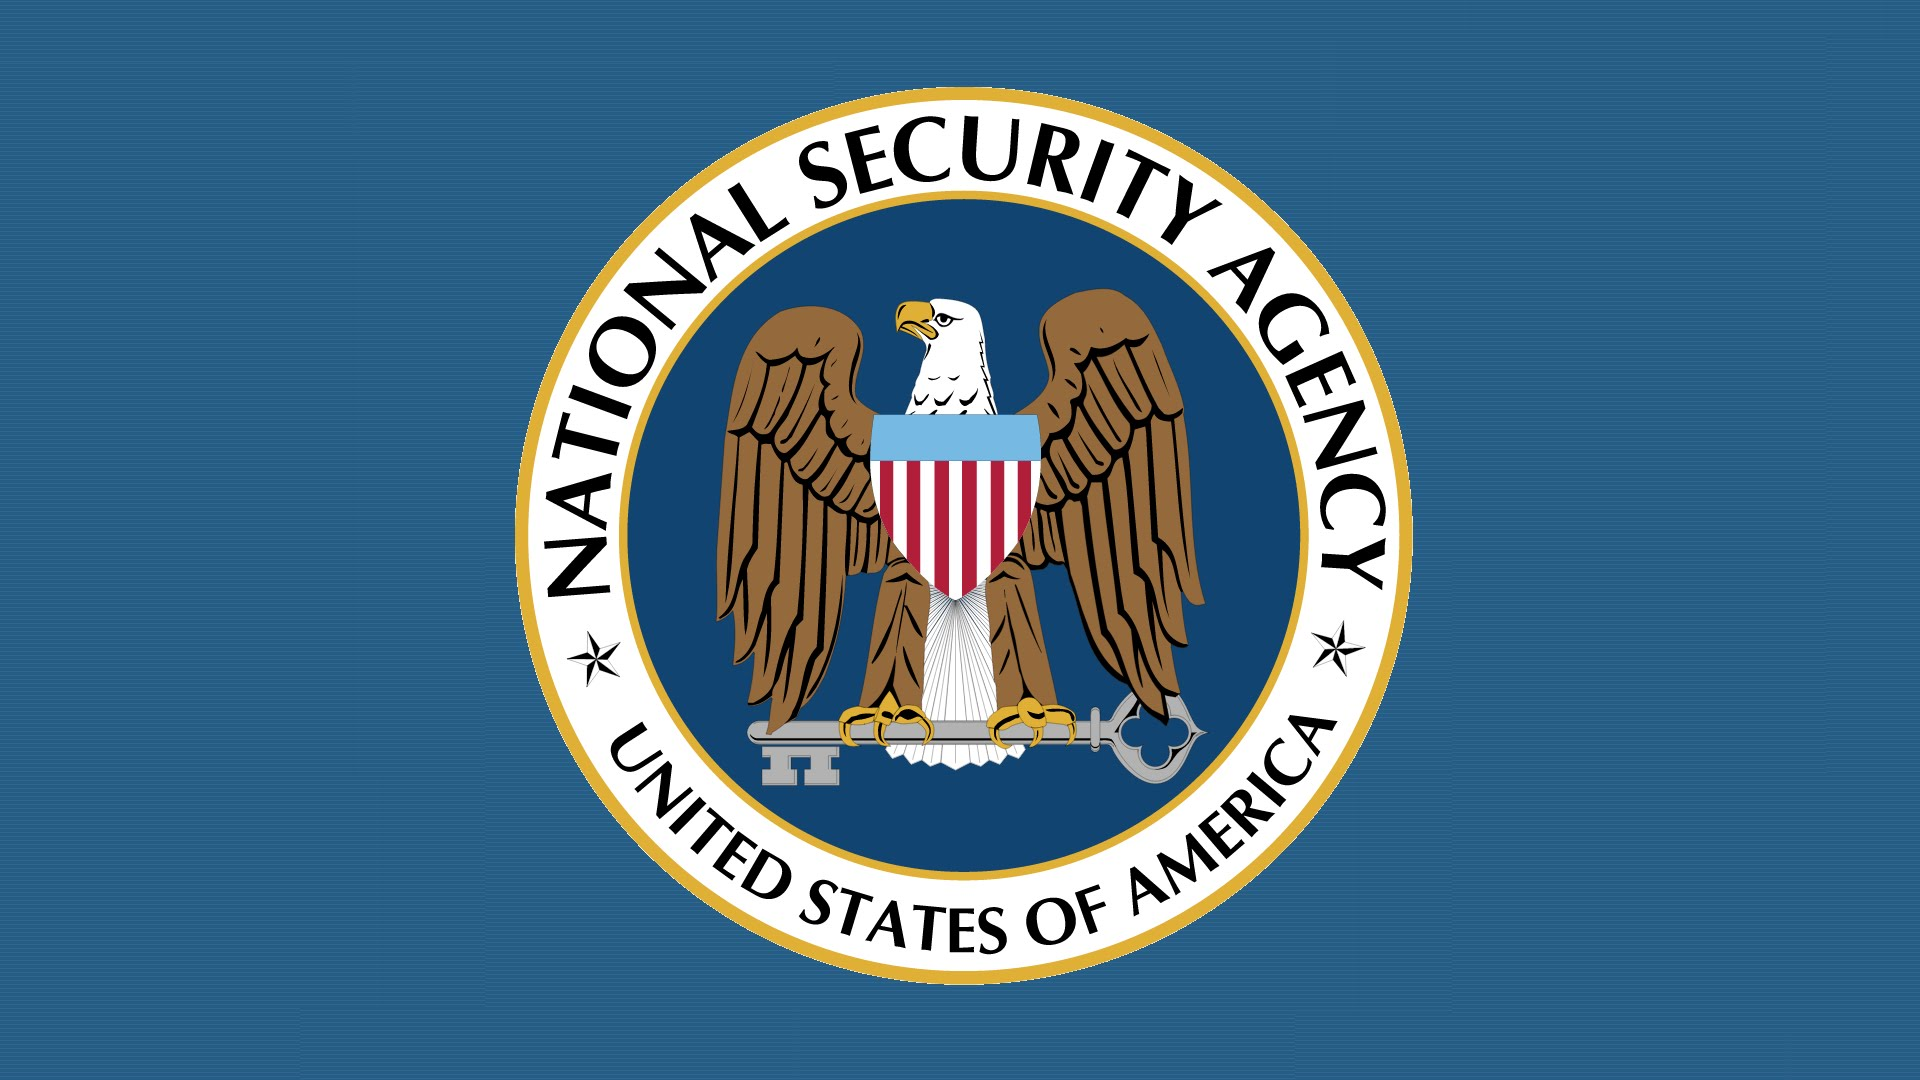 NSA Wallpaper